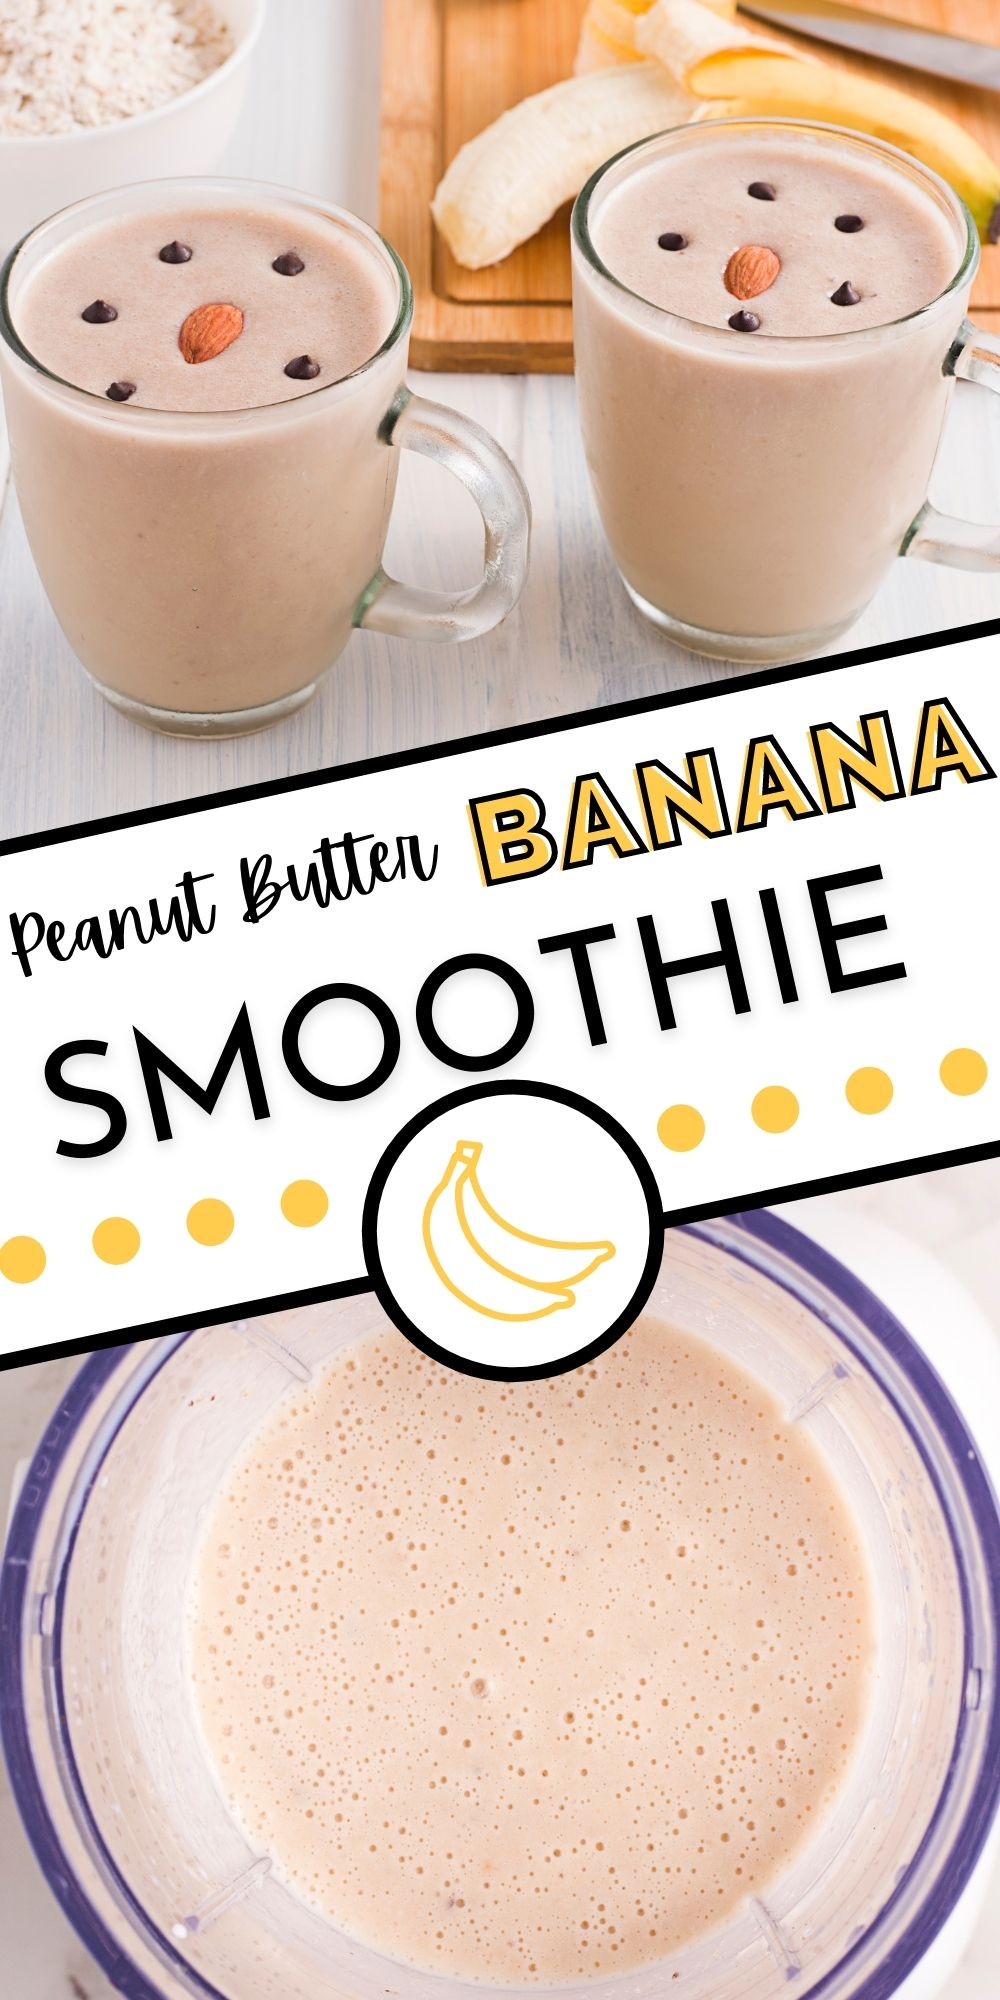 This HealthyPeanut Butter Banana Smoothierecipe is our classic go-to smoothie that we love whipping up for breakfast or after-school snacks. via @easybudgetrecipes